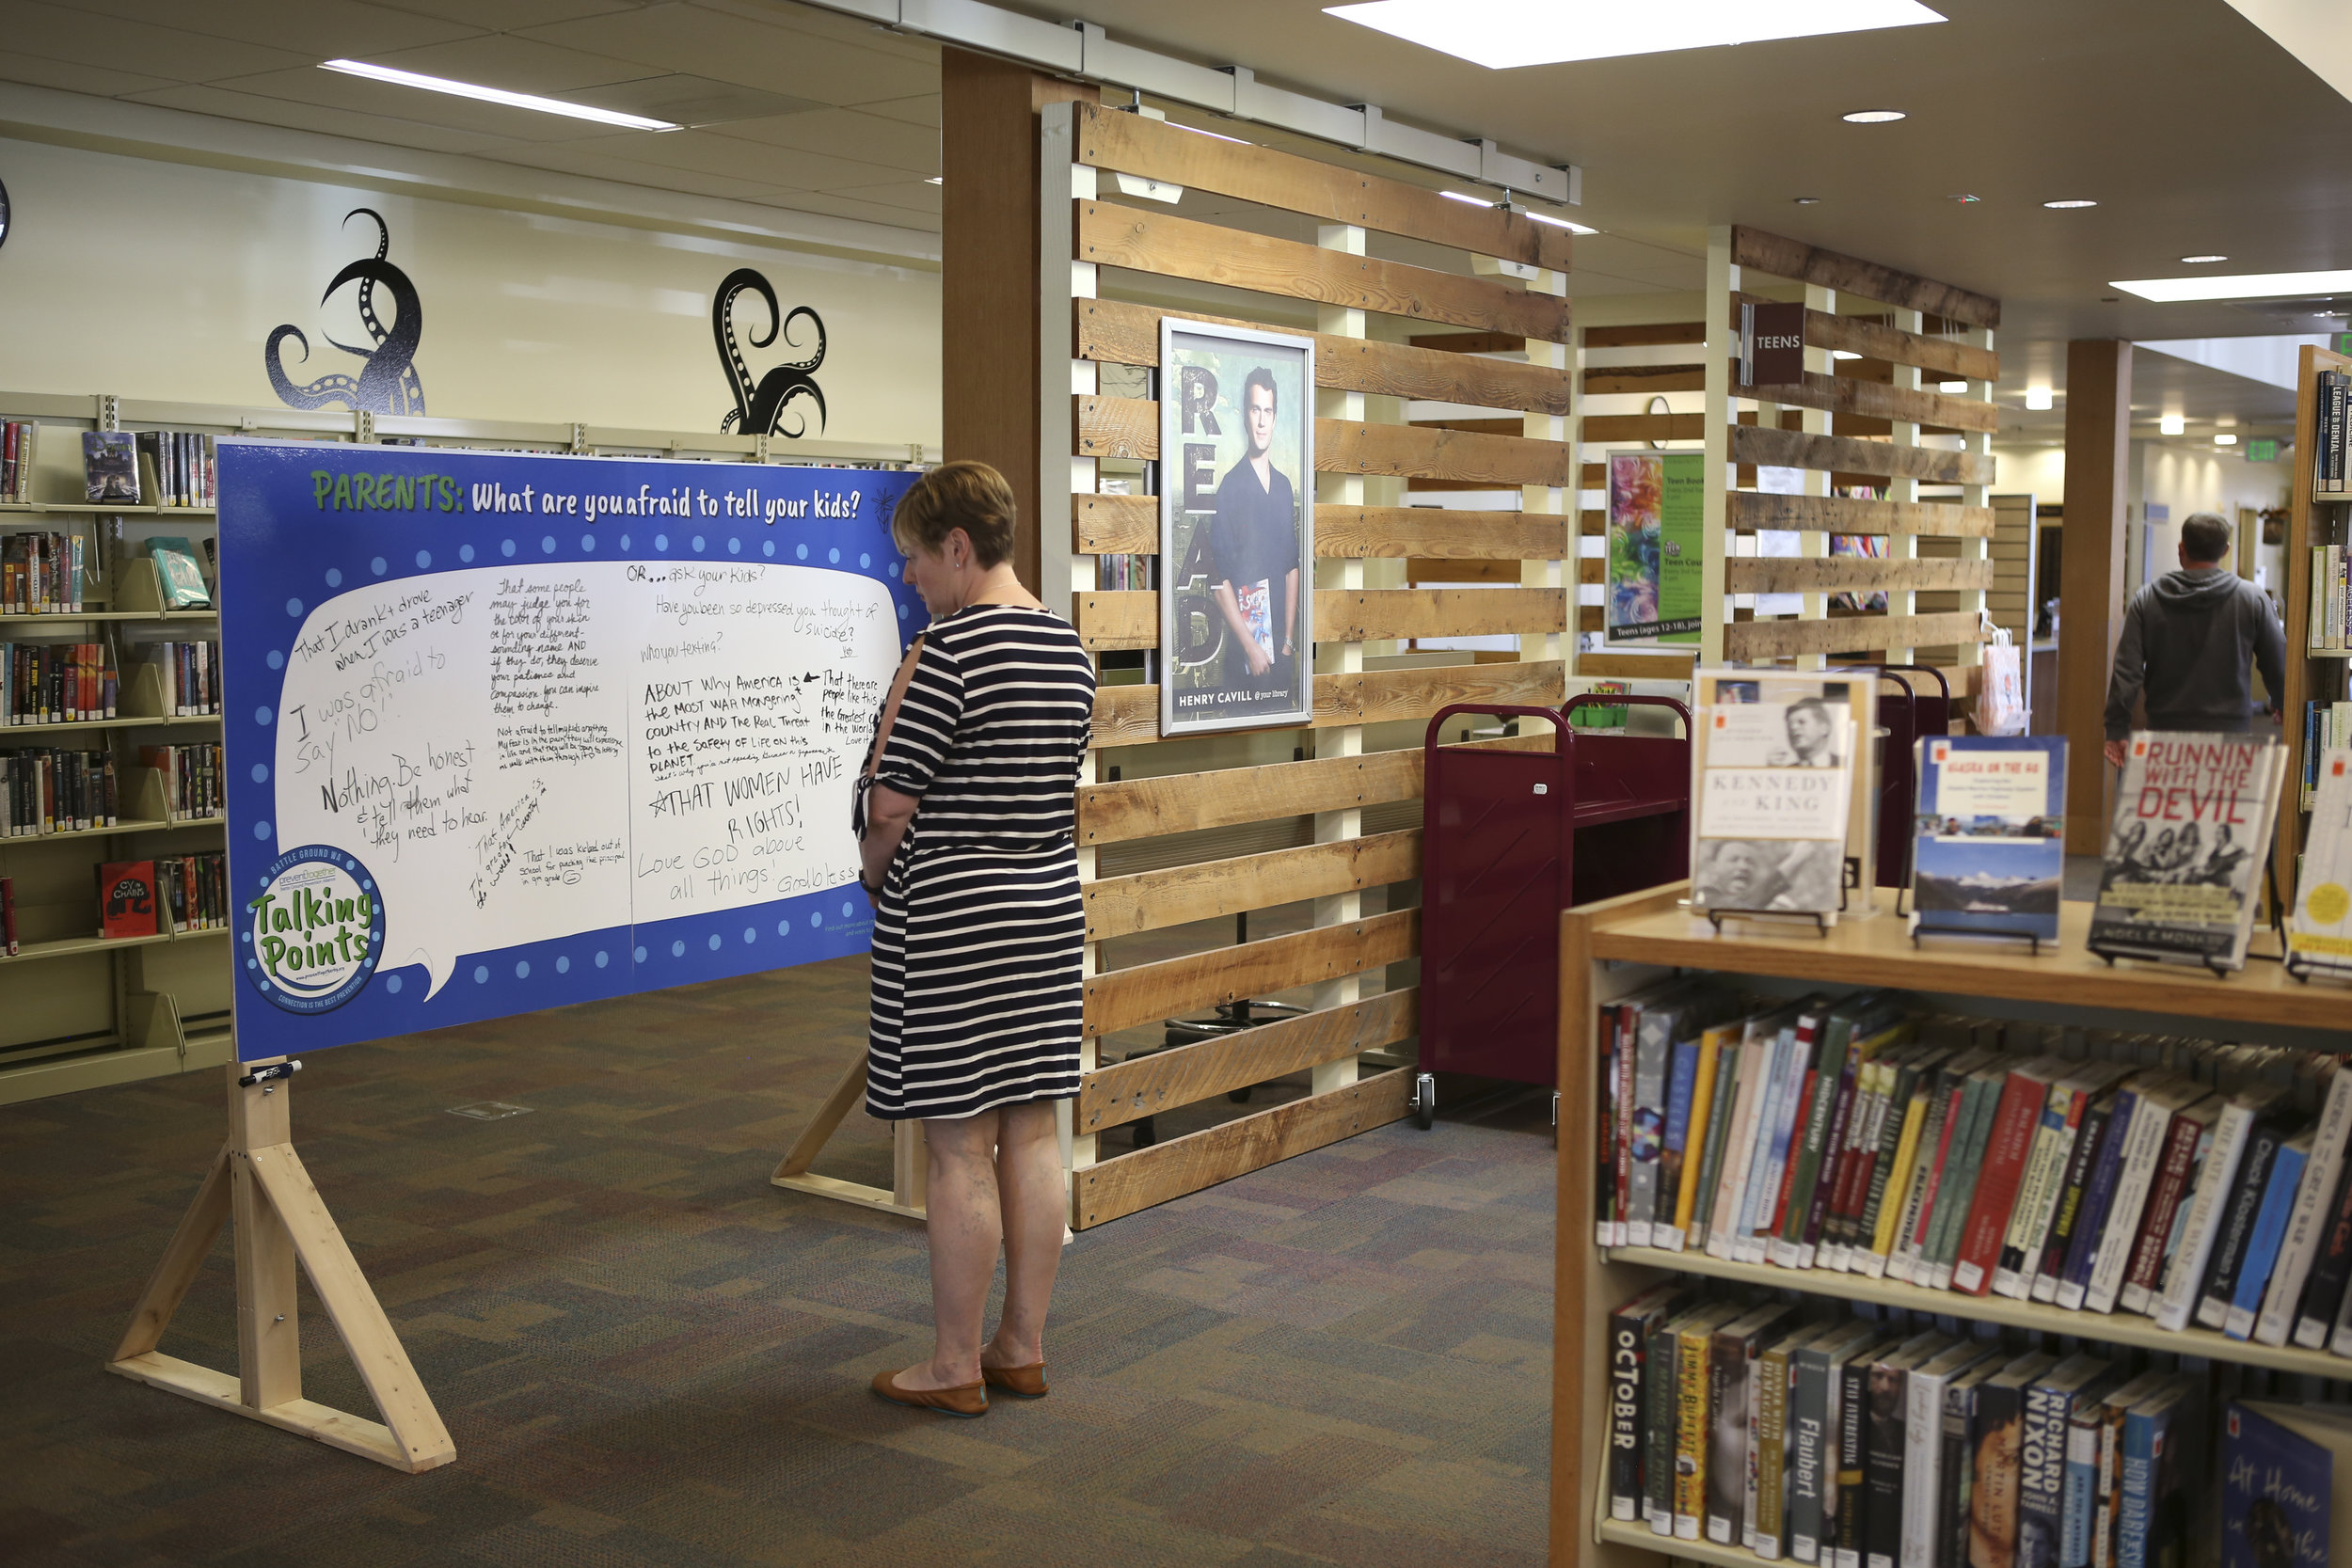 Interactive installation at the BattleGround Public Library: A conversation between parents and Kids.